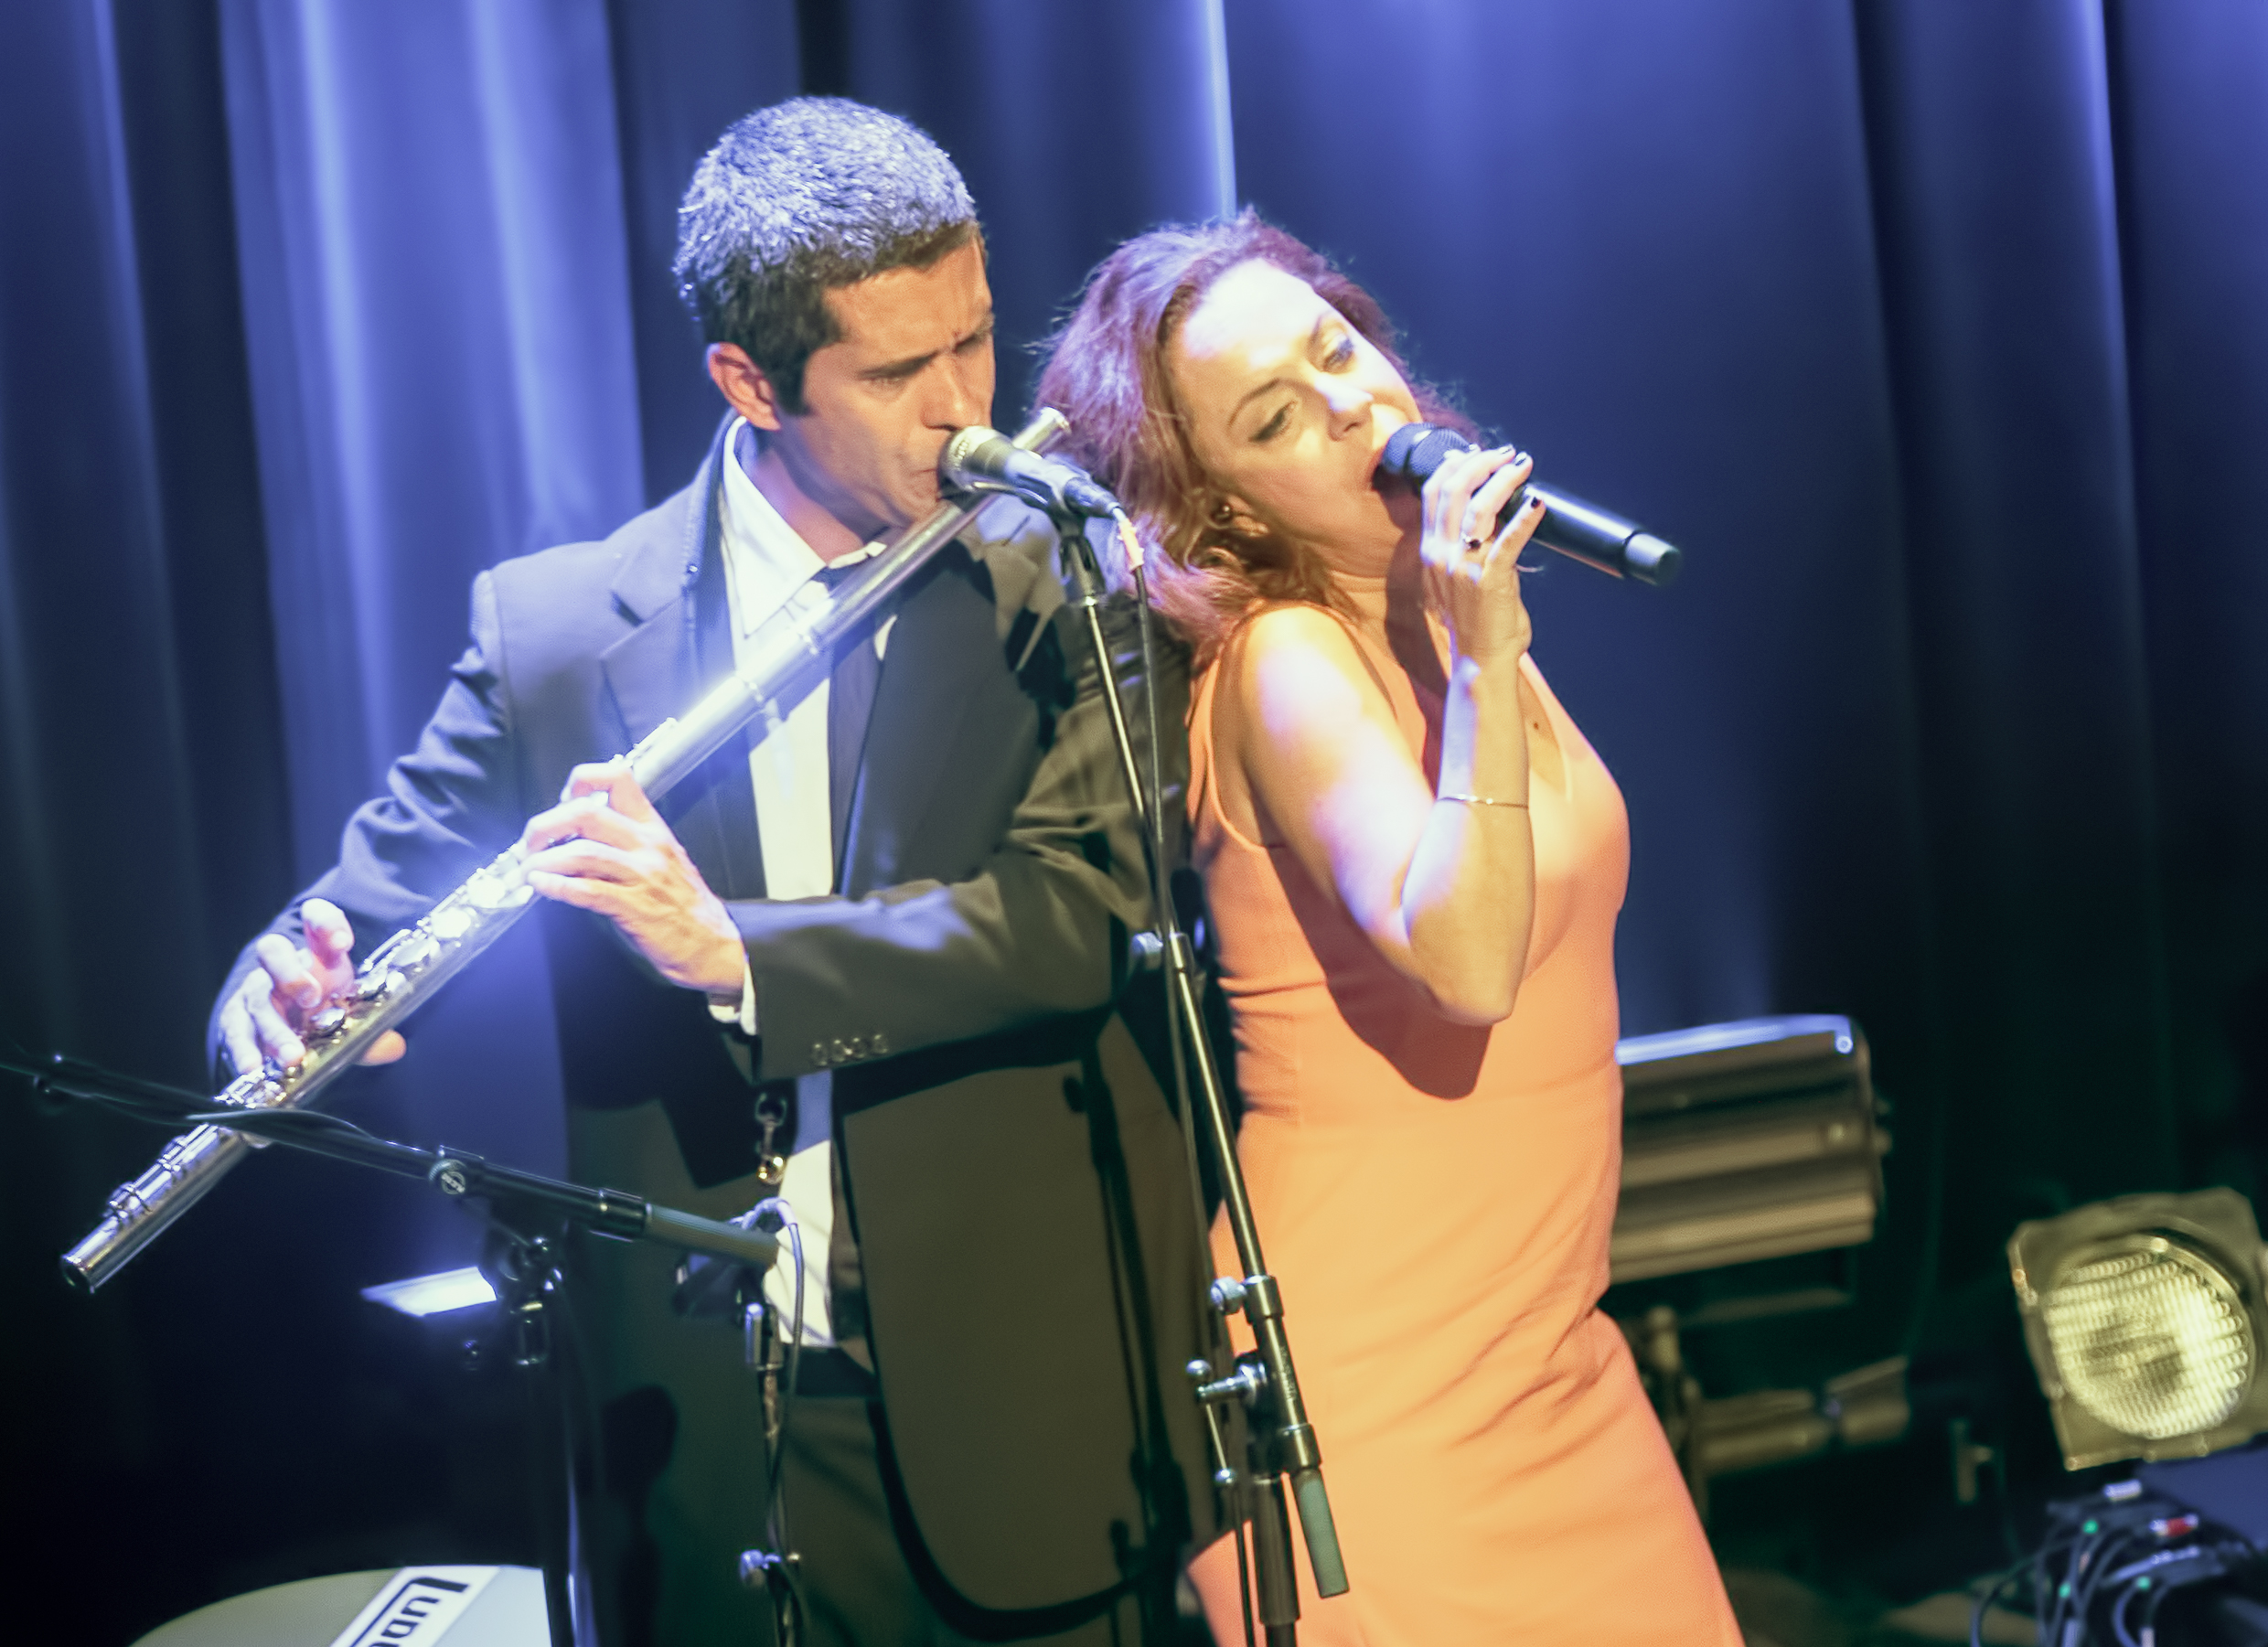 Jorge Vidal and Bebel Gilberto at the Montreal International Jazz Festival 2015